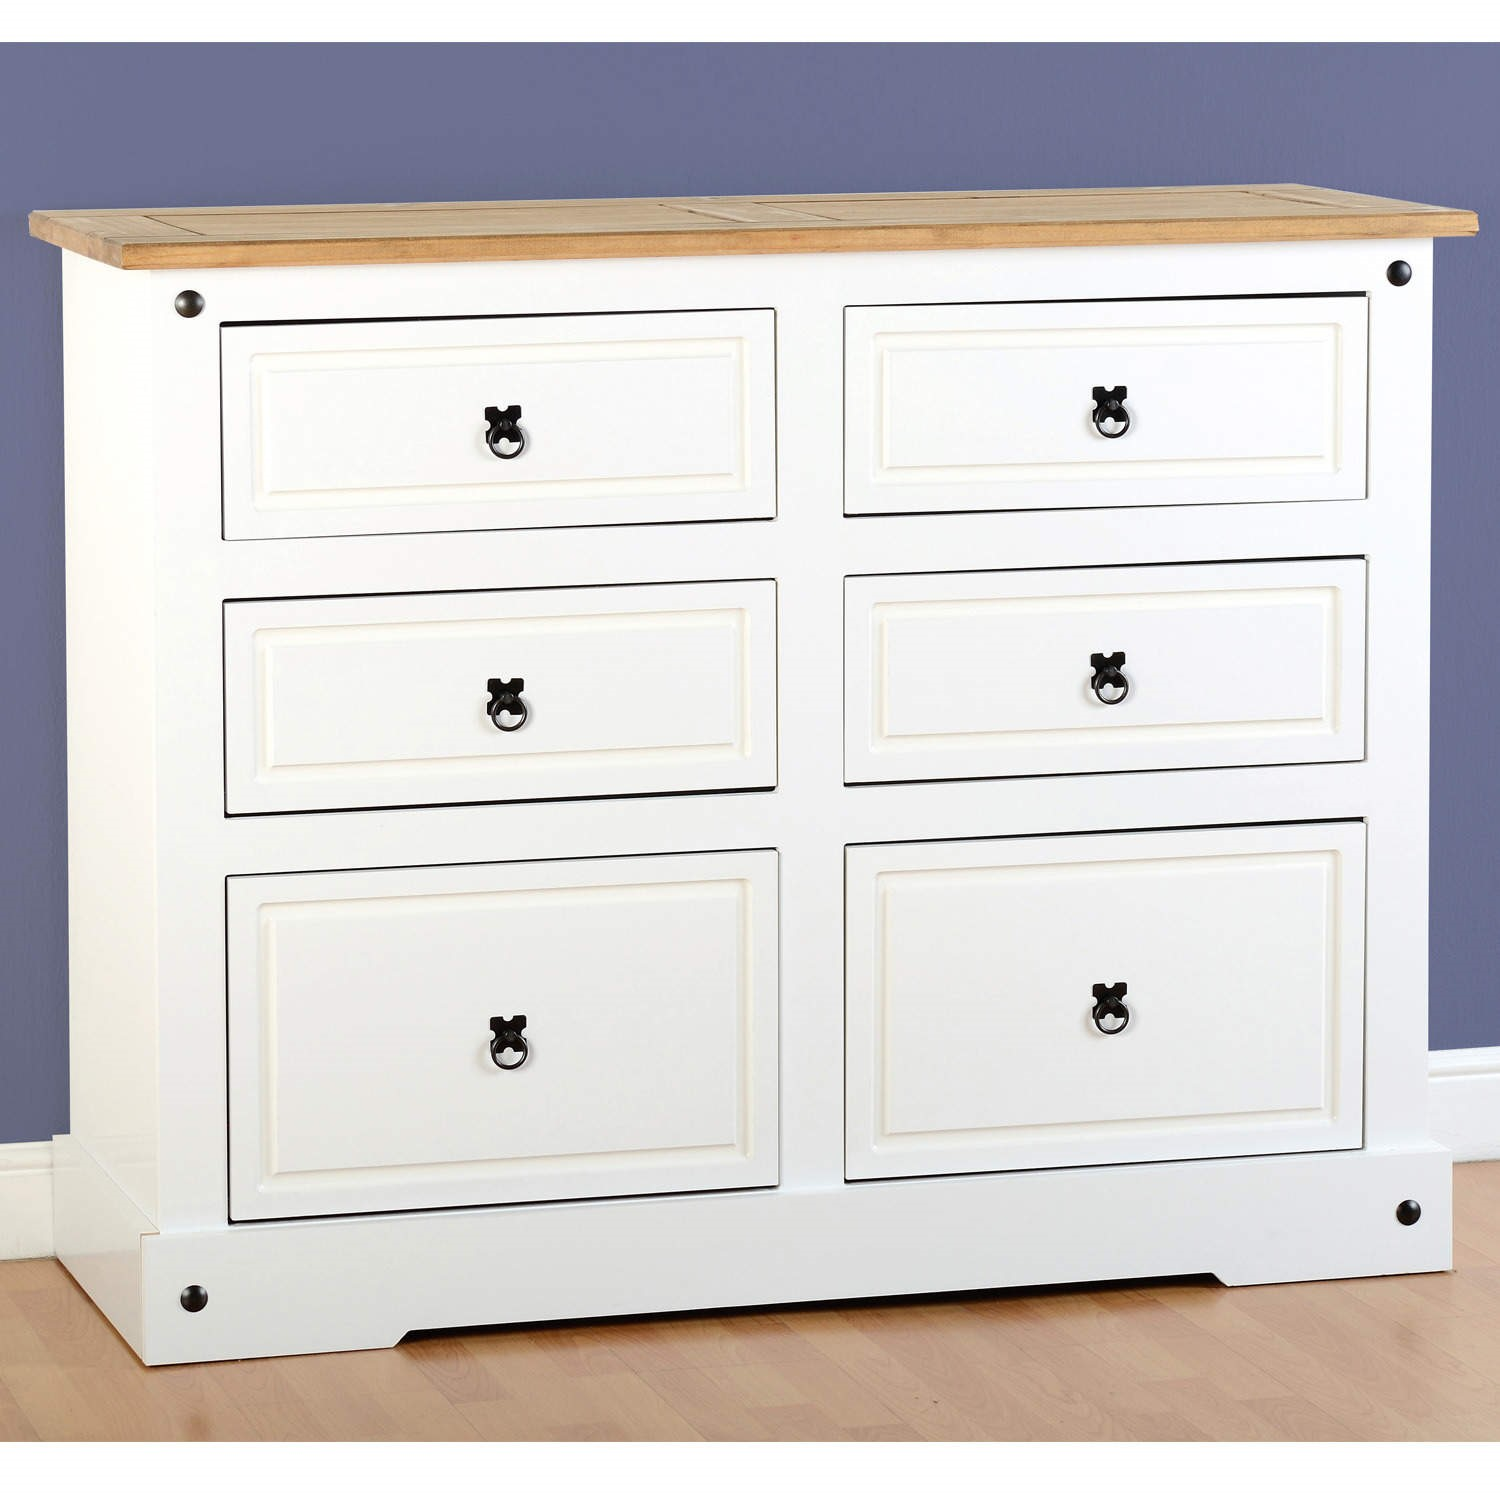 Seconique Corona White 6 Drawer Chest Of Drawers 100 102 062